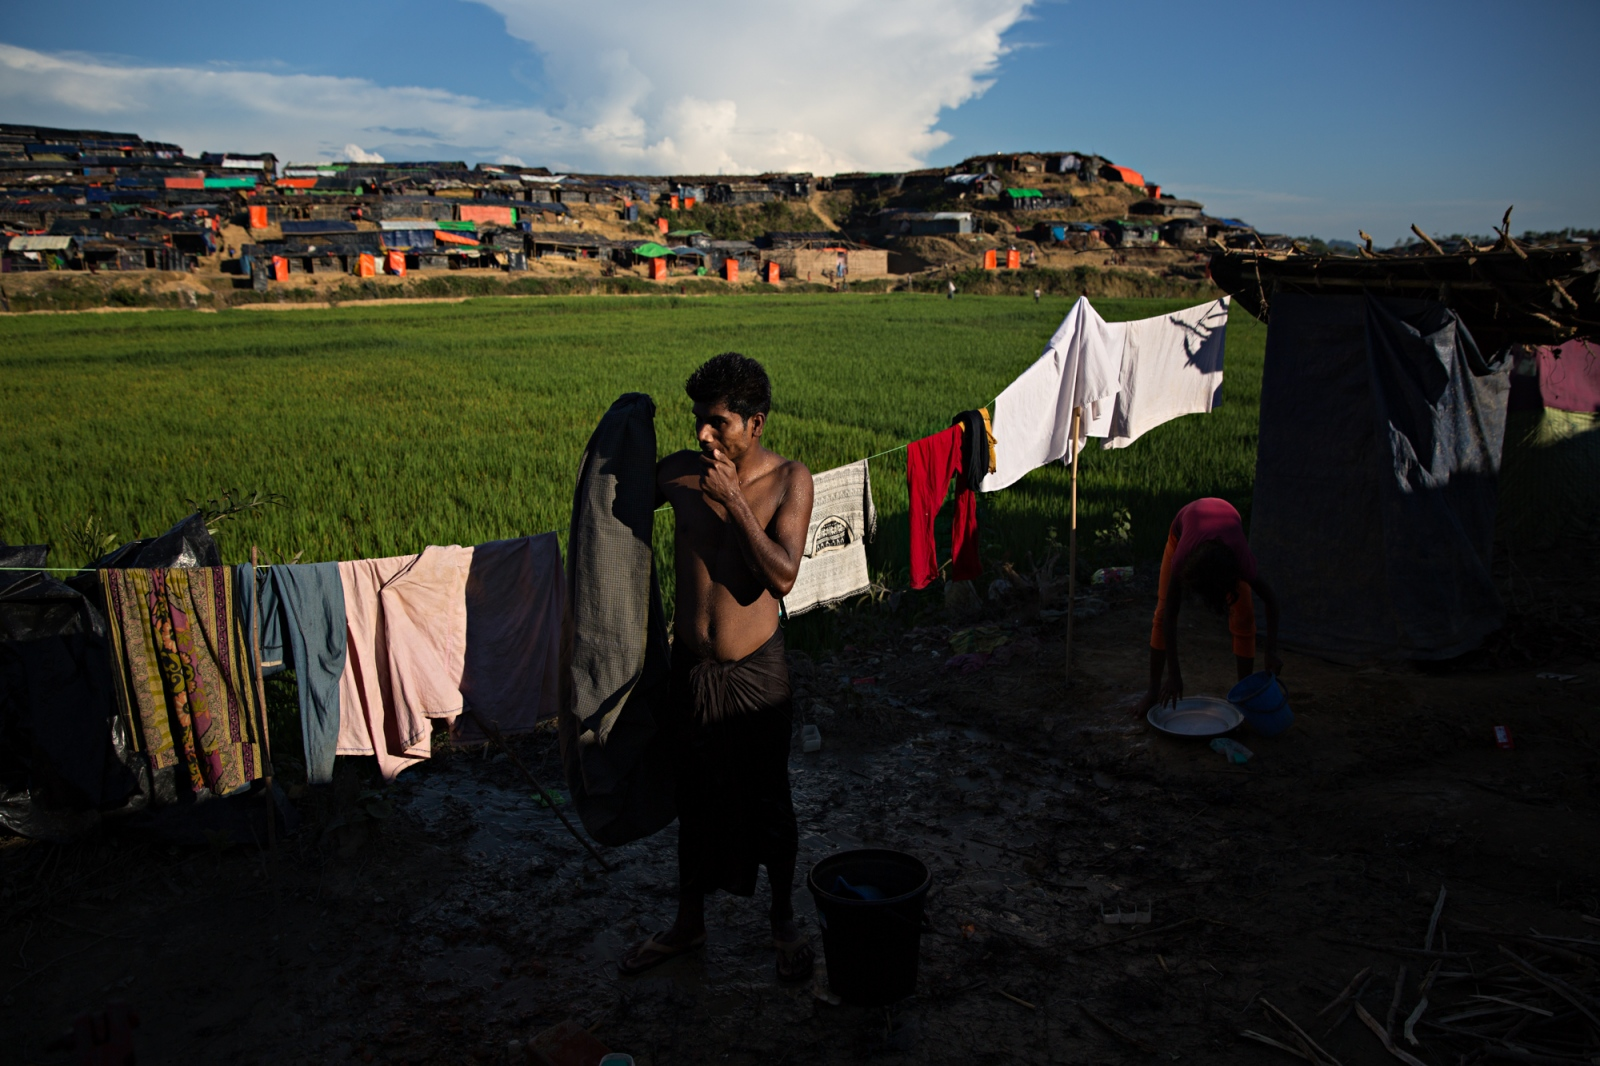 A man washes outdoors at Bagoha camp. The high density of refugees means people have to share every availble resource and space. Showers and bathrooms are drained down the hill sides into the water below.